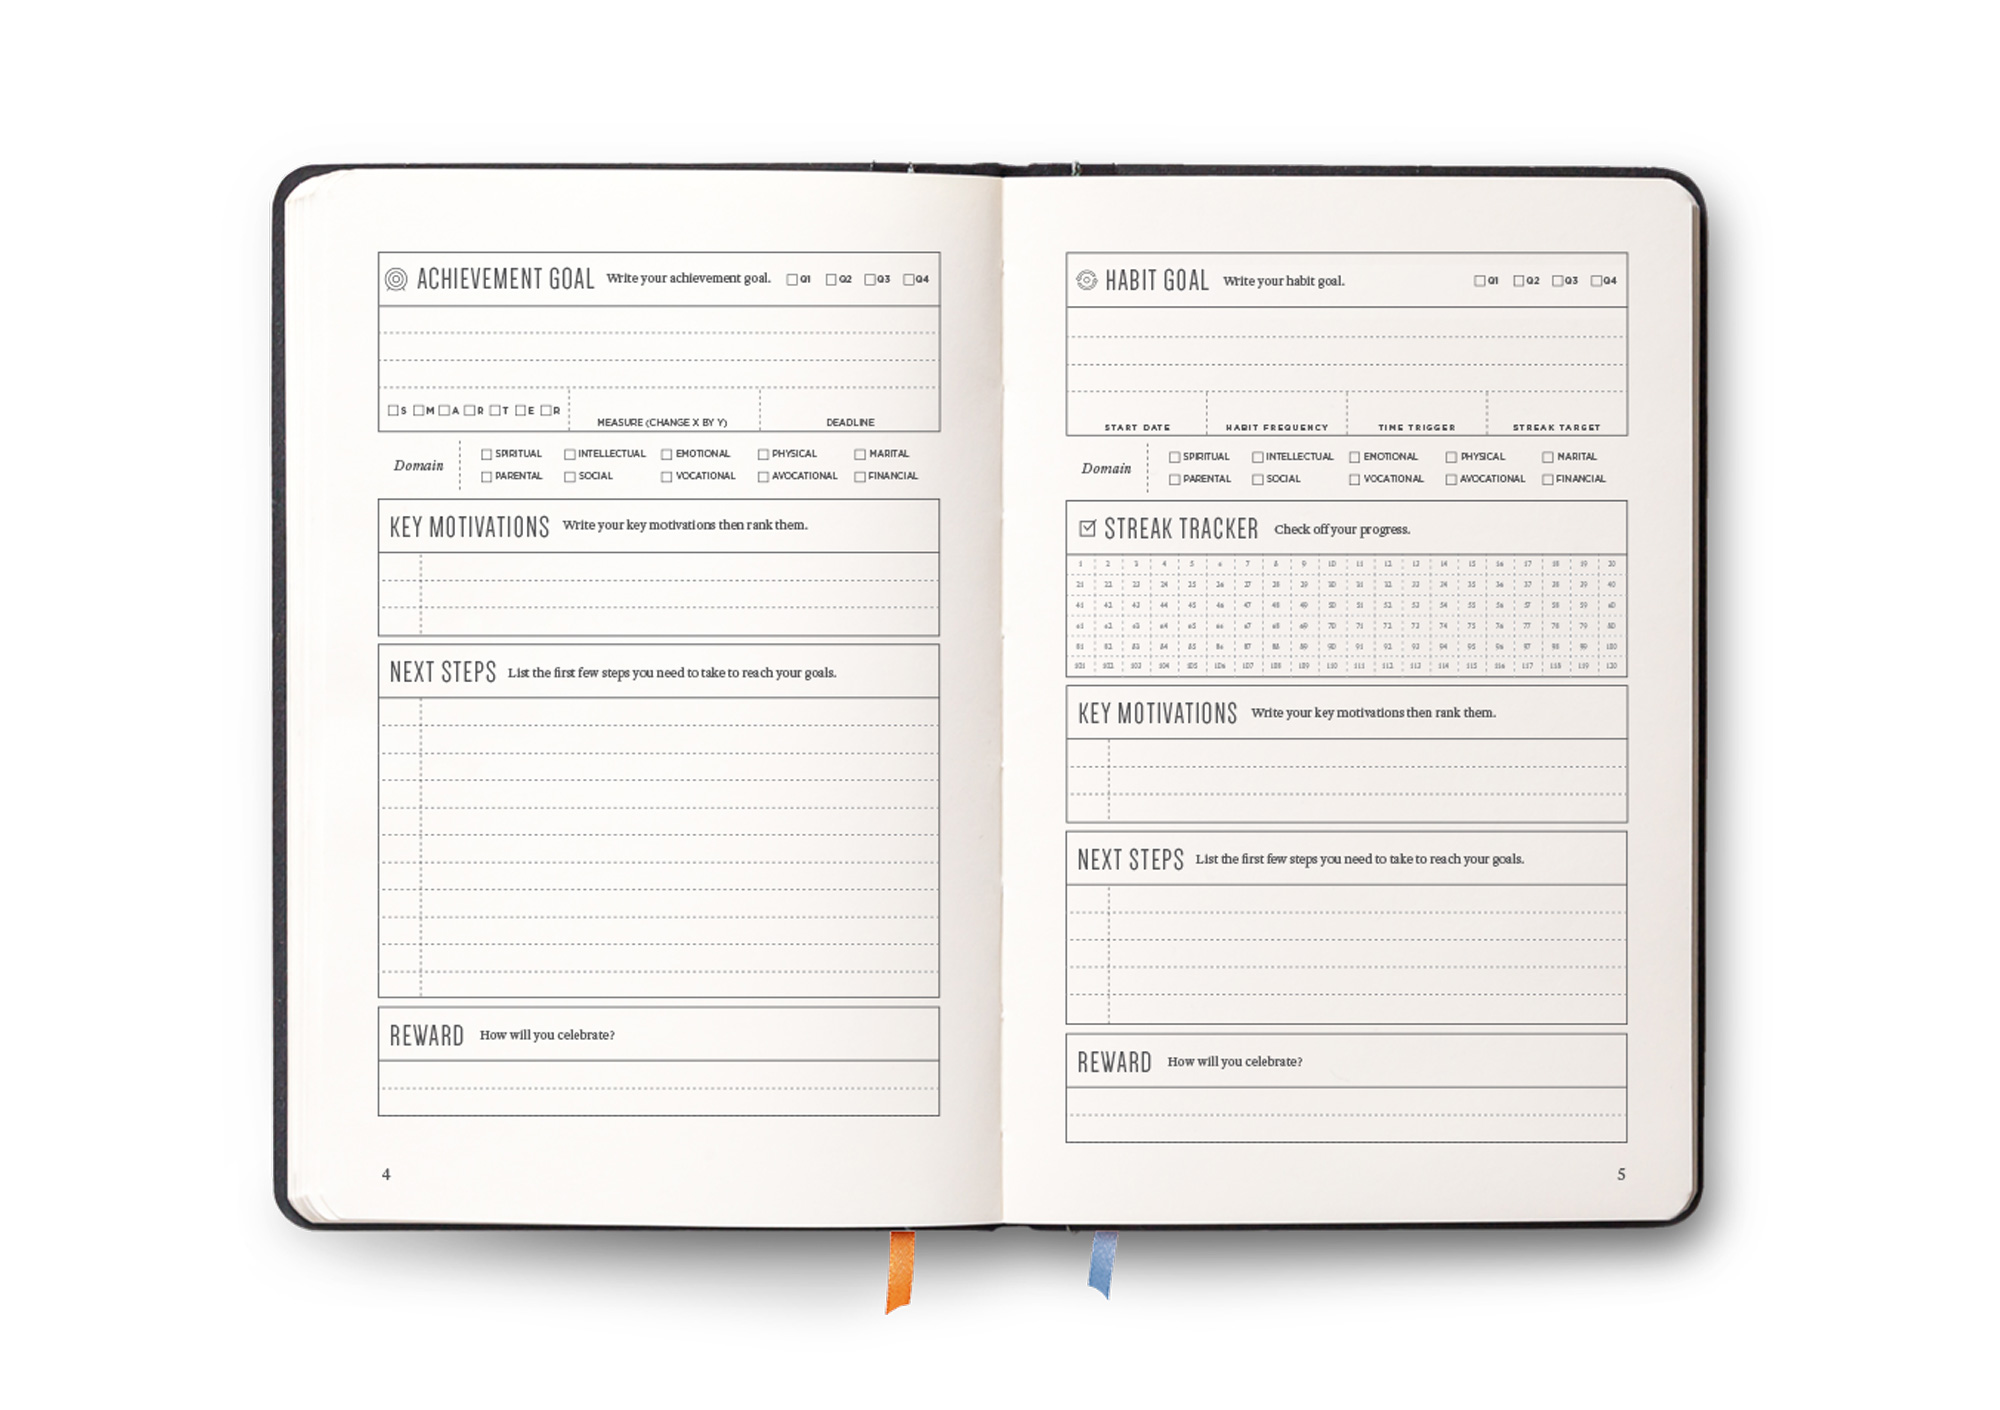 Full Focus Planner | A planner by Michael Hyatt